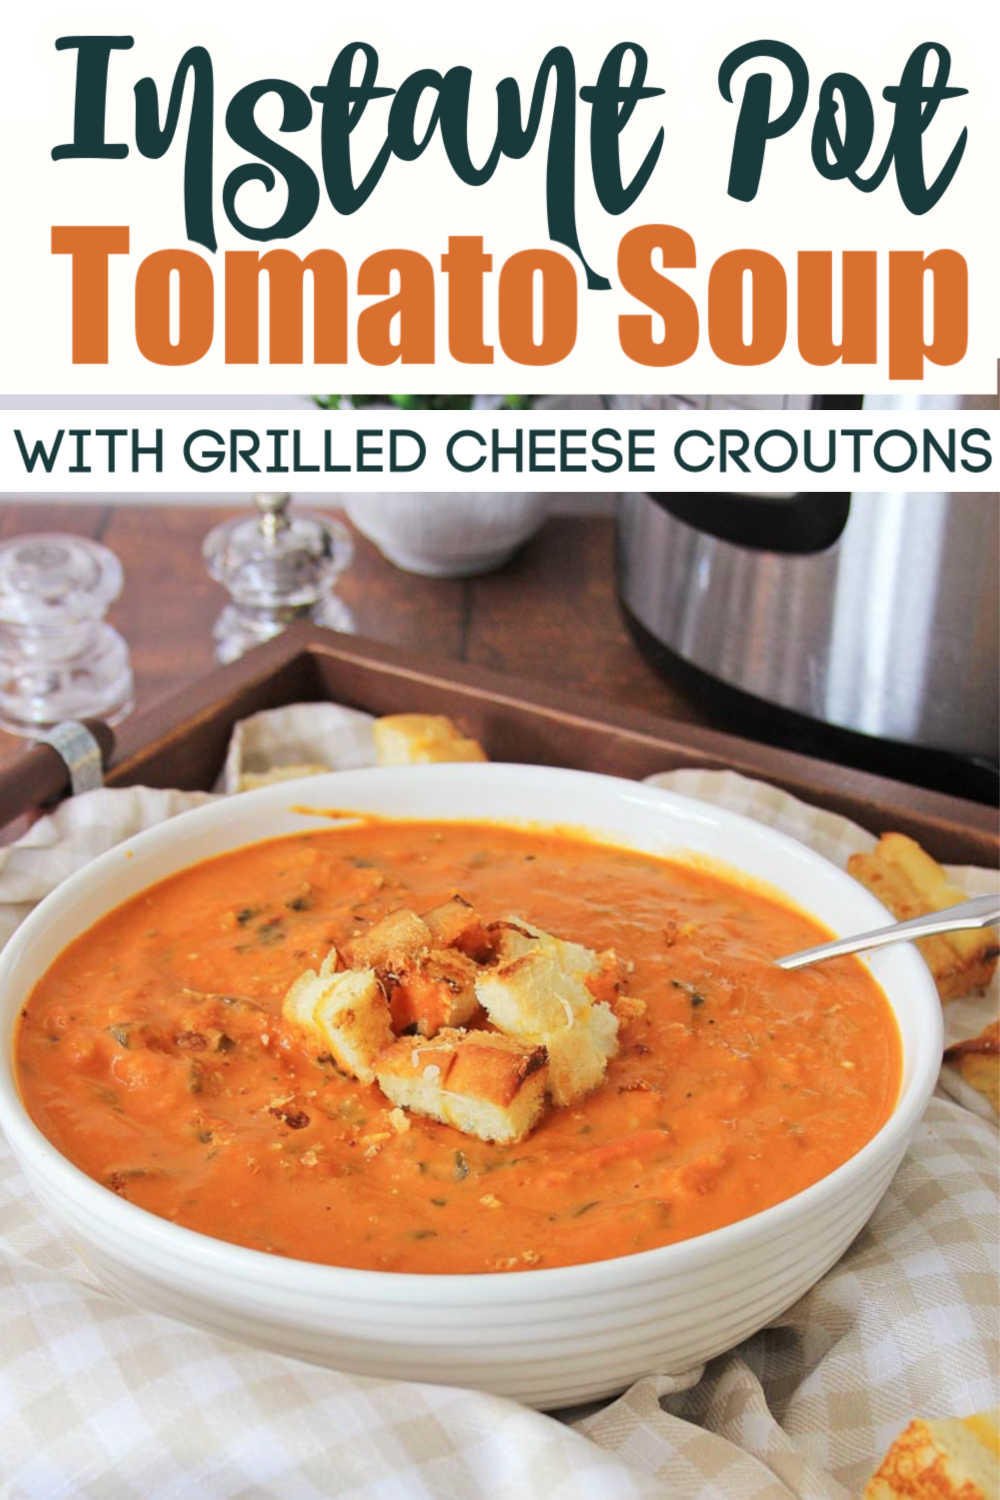 Easy Steps to the Most Delicious Instant Pot Tomato Florentine Soup to Make Tonight